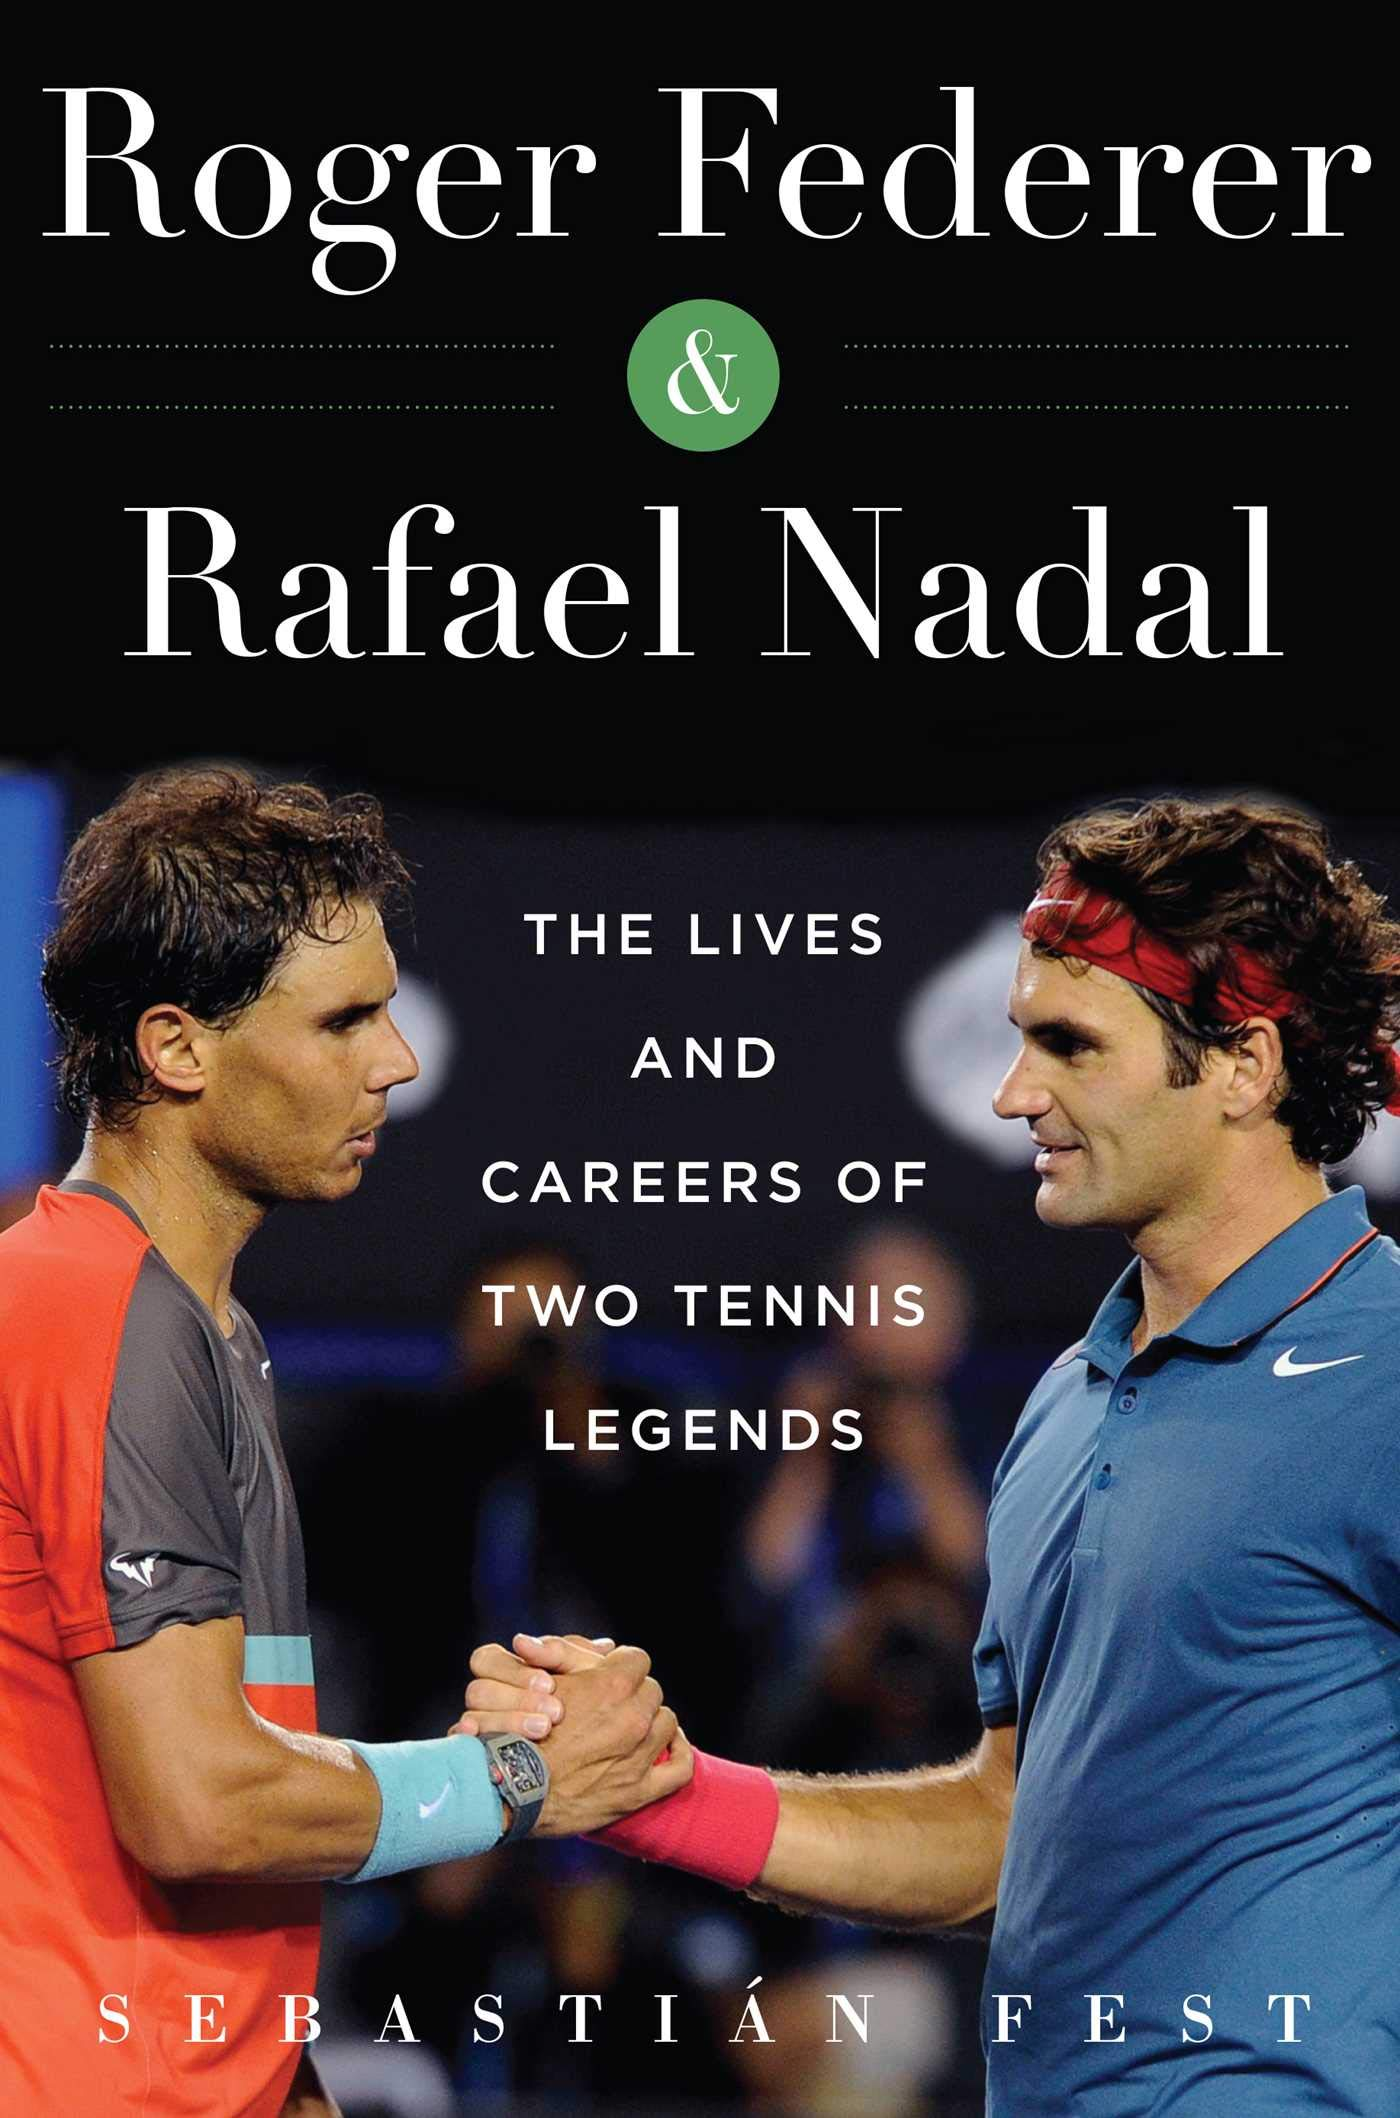 Roger Federer and Rafael Nadal: The Lives and Careers of Two Tennis Legends: Amazon.es: Fest, Sebastian: Libros en idiomas extranjeros